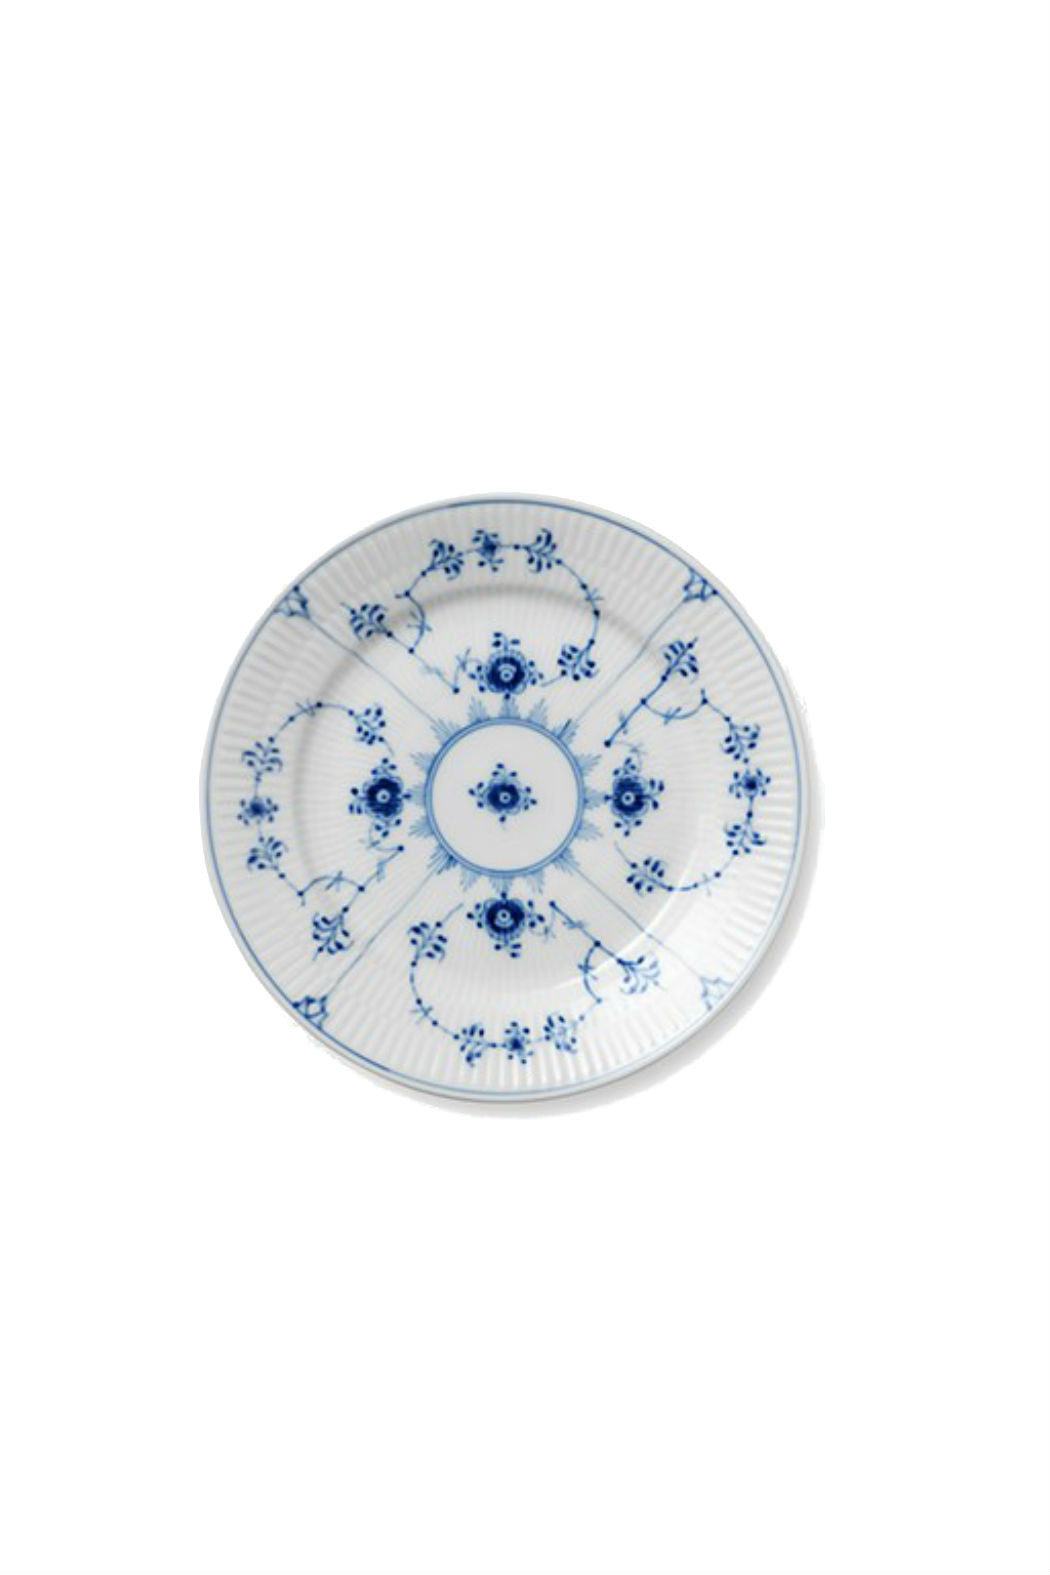 royal copenhagen salad plate, salad plate, fluted salad plate, blue and white salad plate